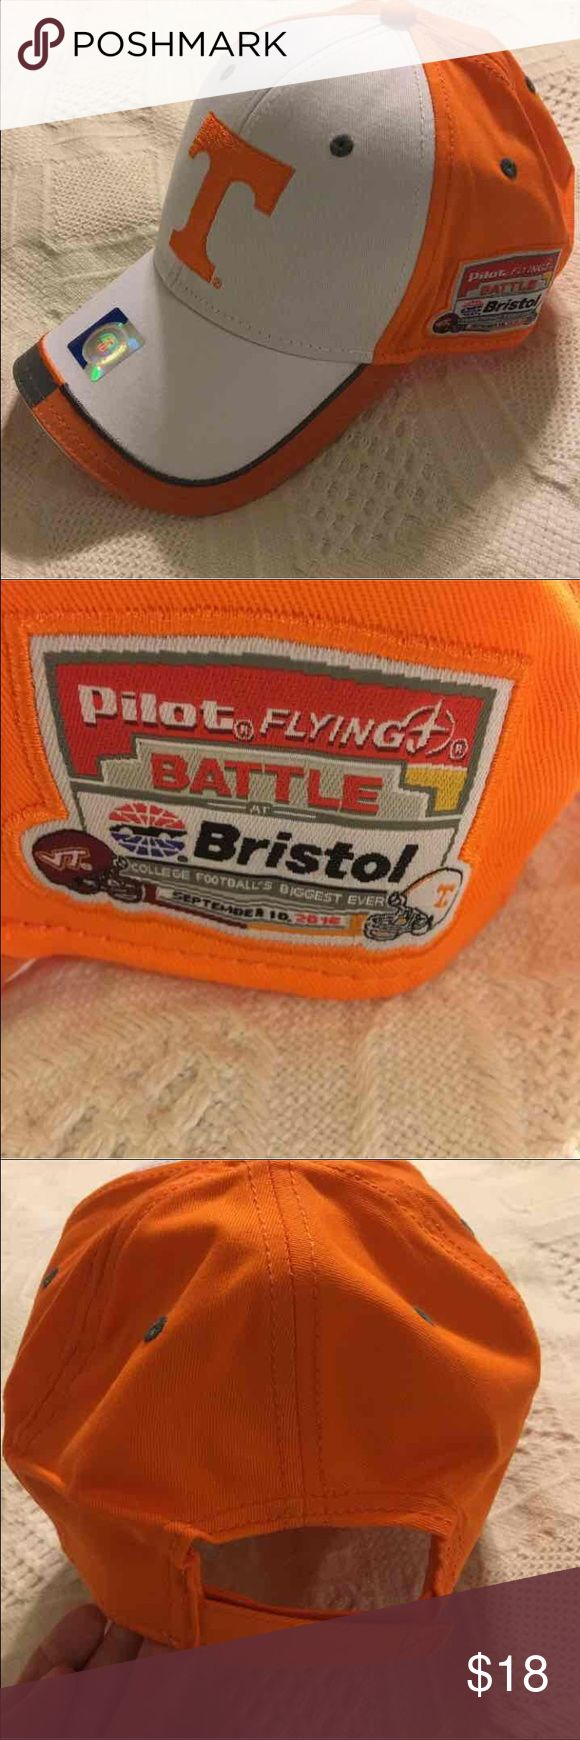 NWT Tennessee Volunteers Battle at Bristol Hat Tennessee Volunteers Battle at Bristol Hat. Brand new, never worn. Commemorative hat from college football's largest football game ever. Game played at Bristol Motor Speedway between University of Tennessee Volunteers and Virginia Tech Hokies. Unisex hat, 100% cotton, one size fits most. Adjustable Velcro closure. Accessories Hats